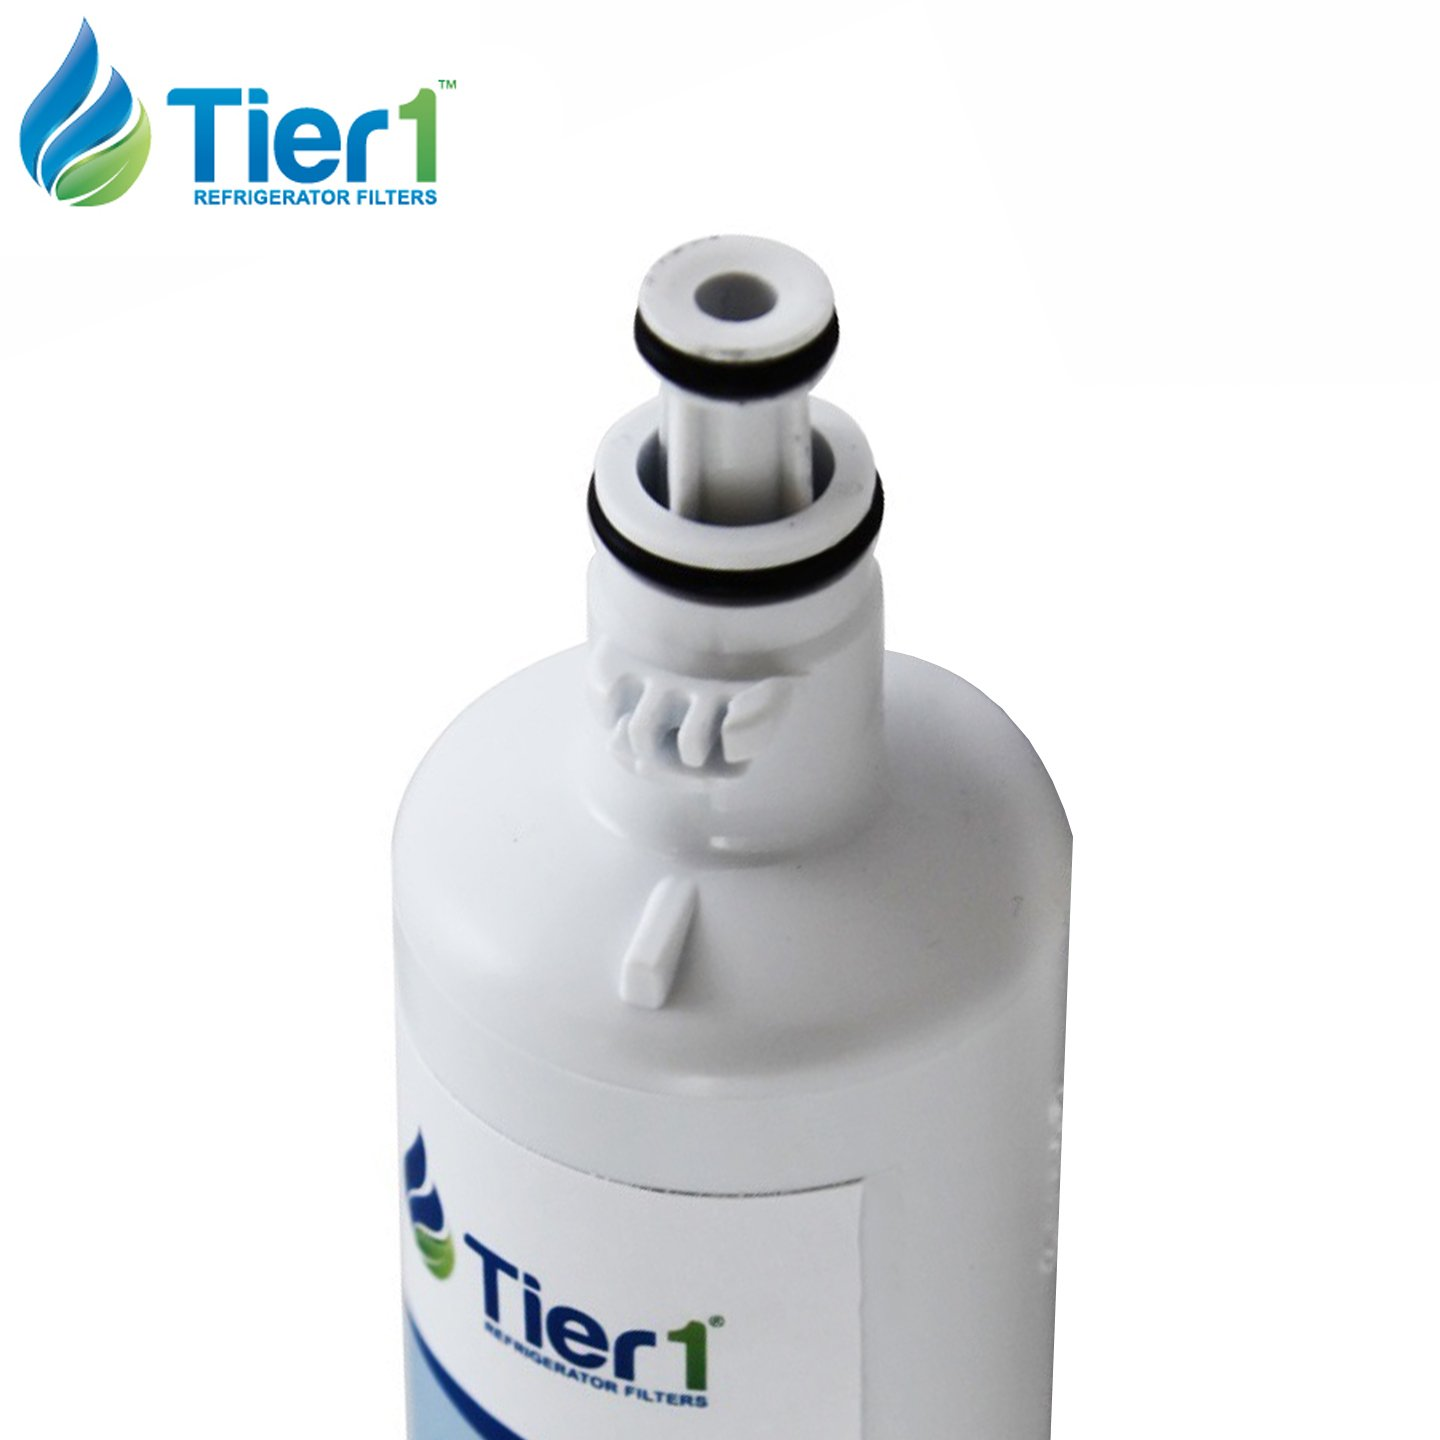 Tier1 Replacement GE RPWF Refrigerator Water Filter (NOT for RPWFE) 2 Pack by Tier1 (Image #2)